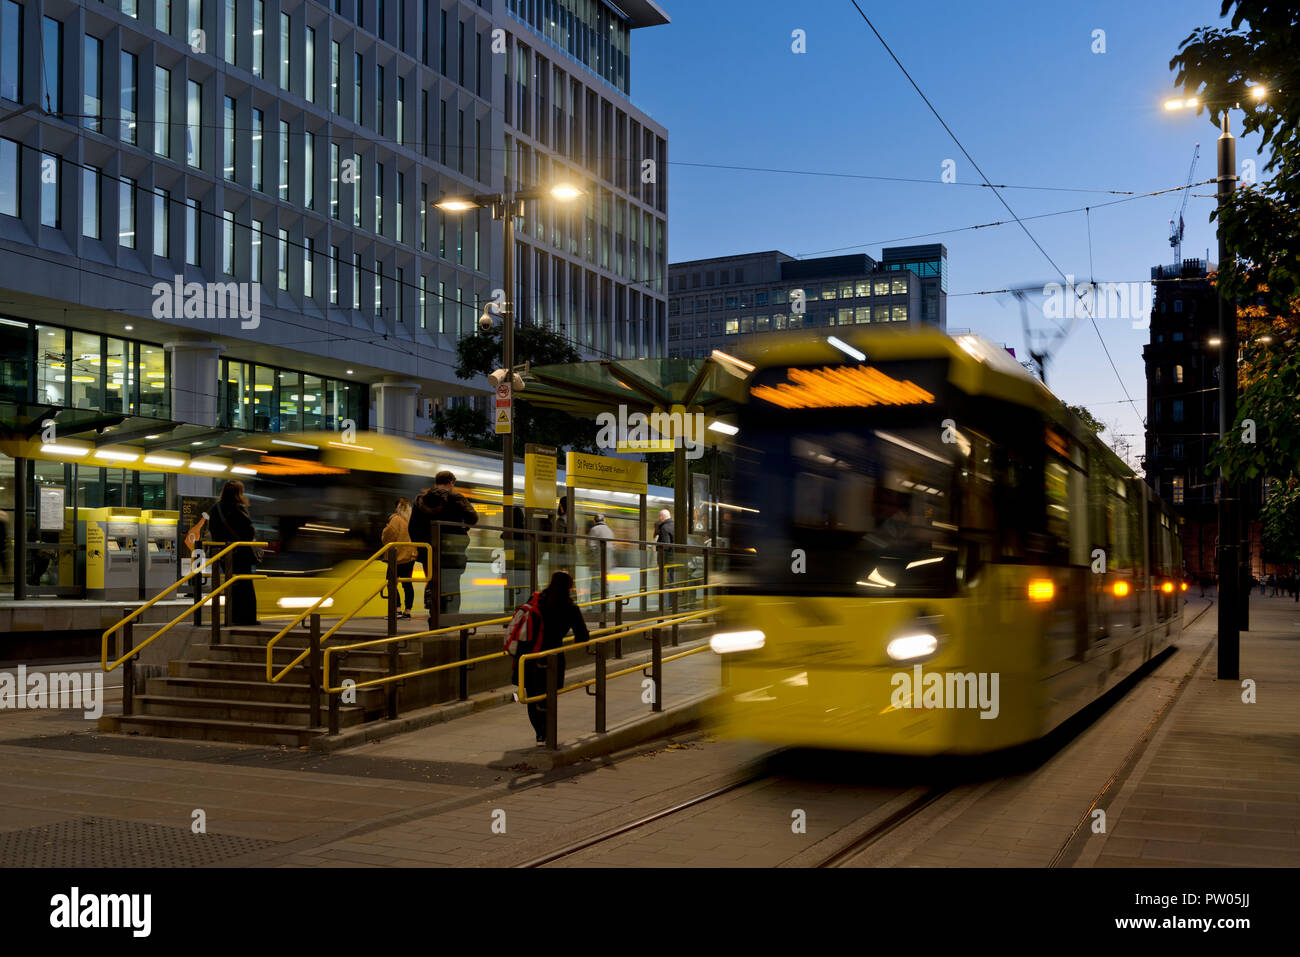 Two Metrolink trams leave St Peter's square stop at night in Manchester City Centre, UK. - Stock Image